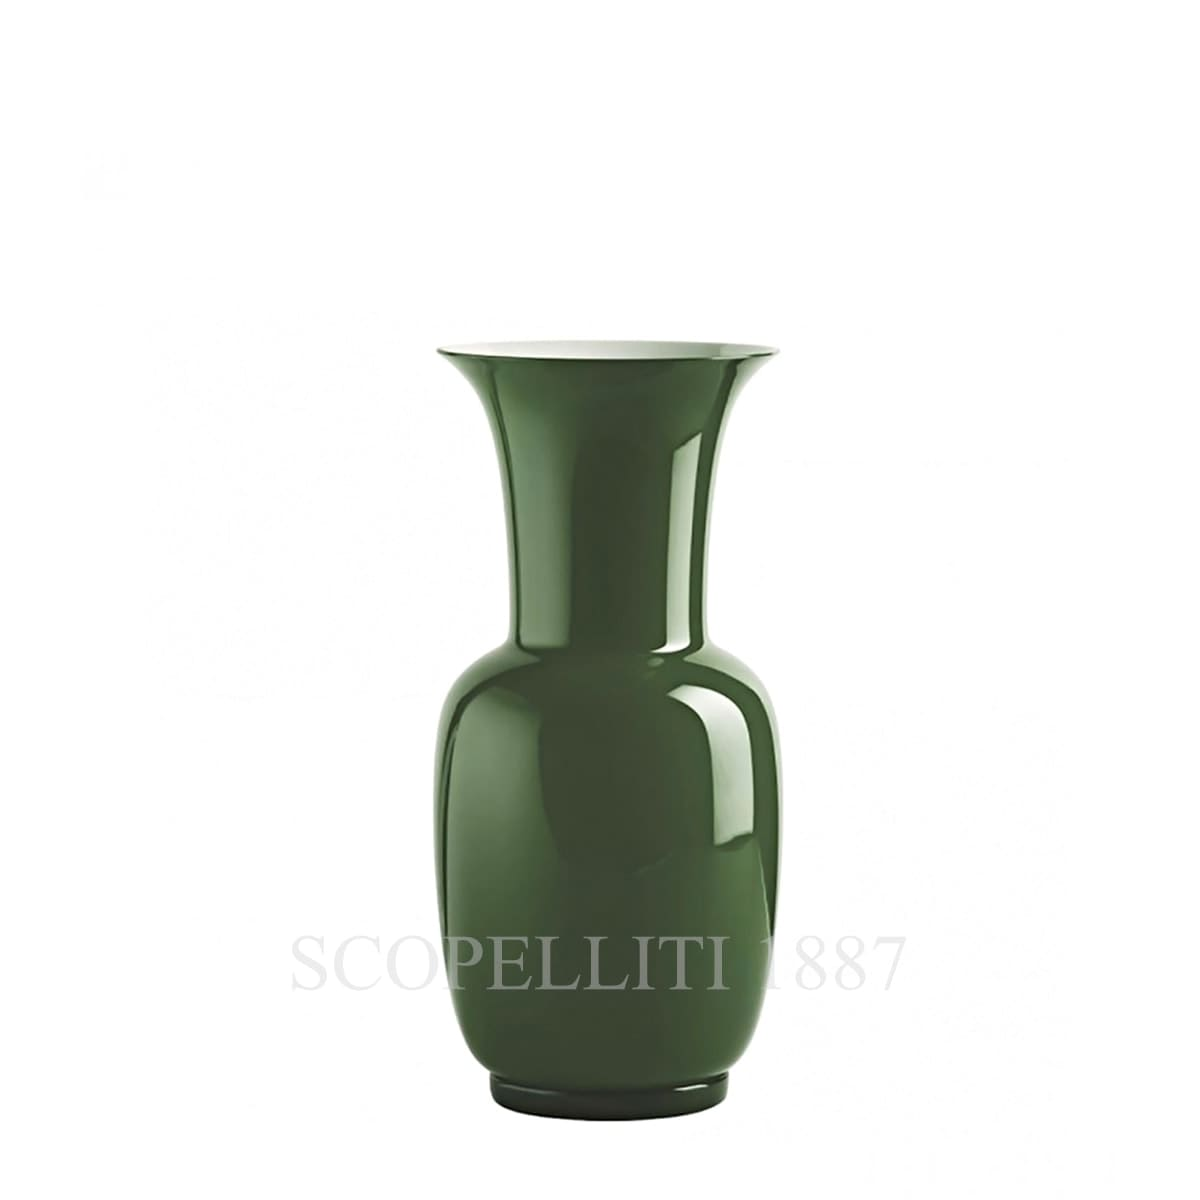 venini italian glass vase green